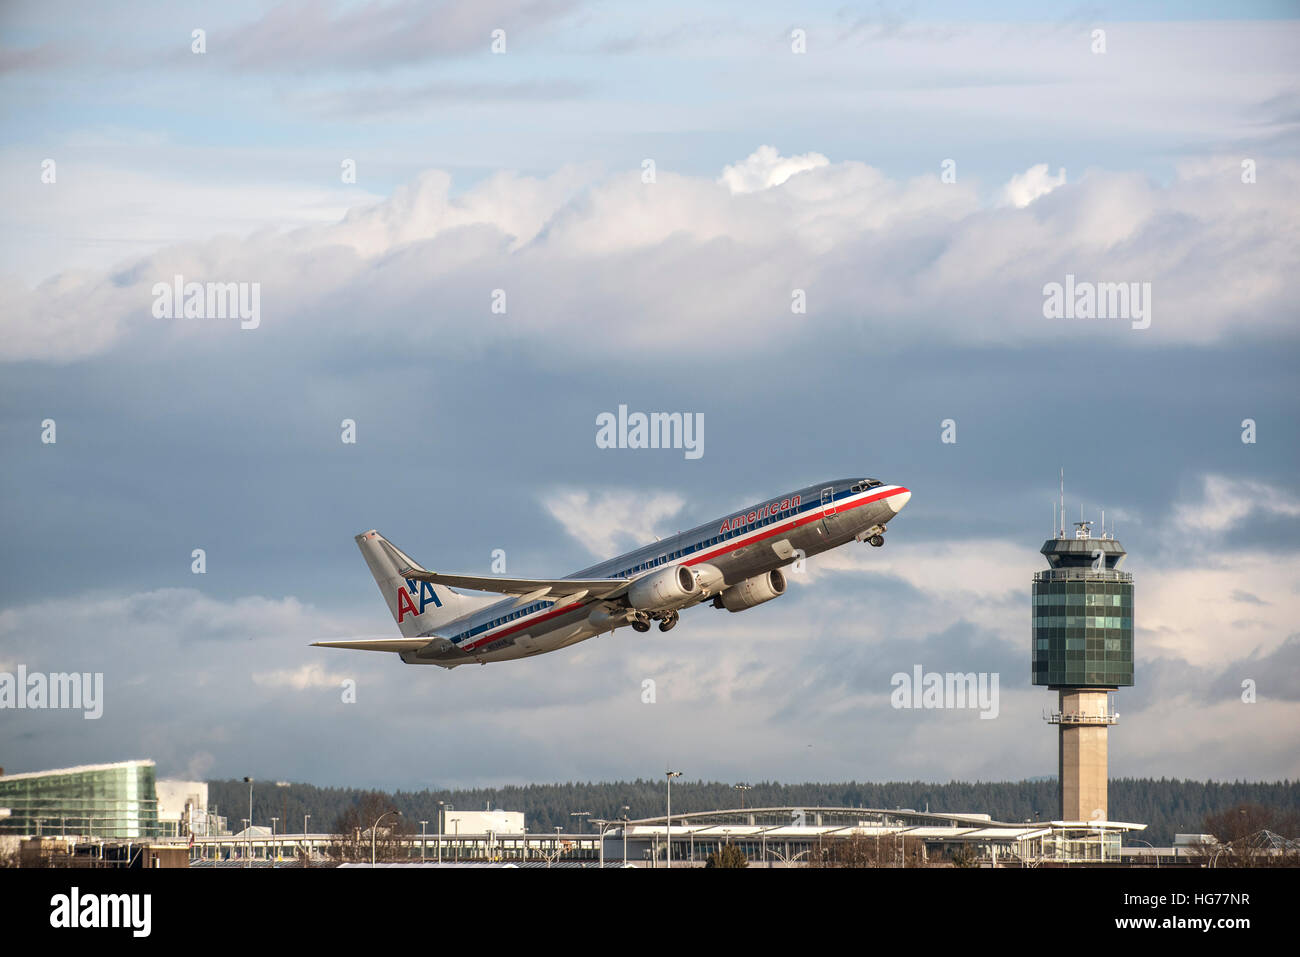 American Airlines Boeing 737-823 airborne after take off from Vancouver International airport. - Stock Image